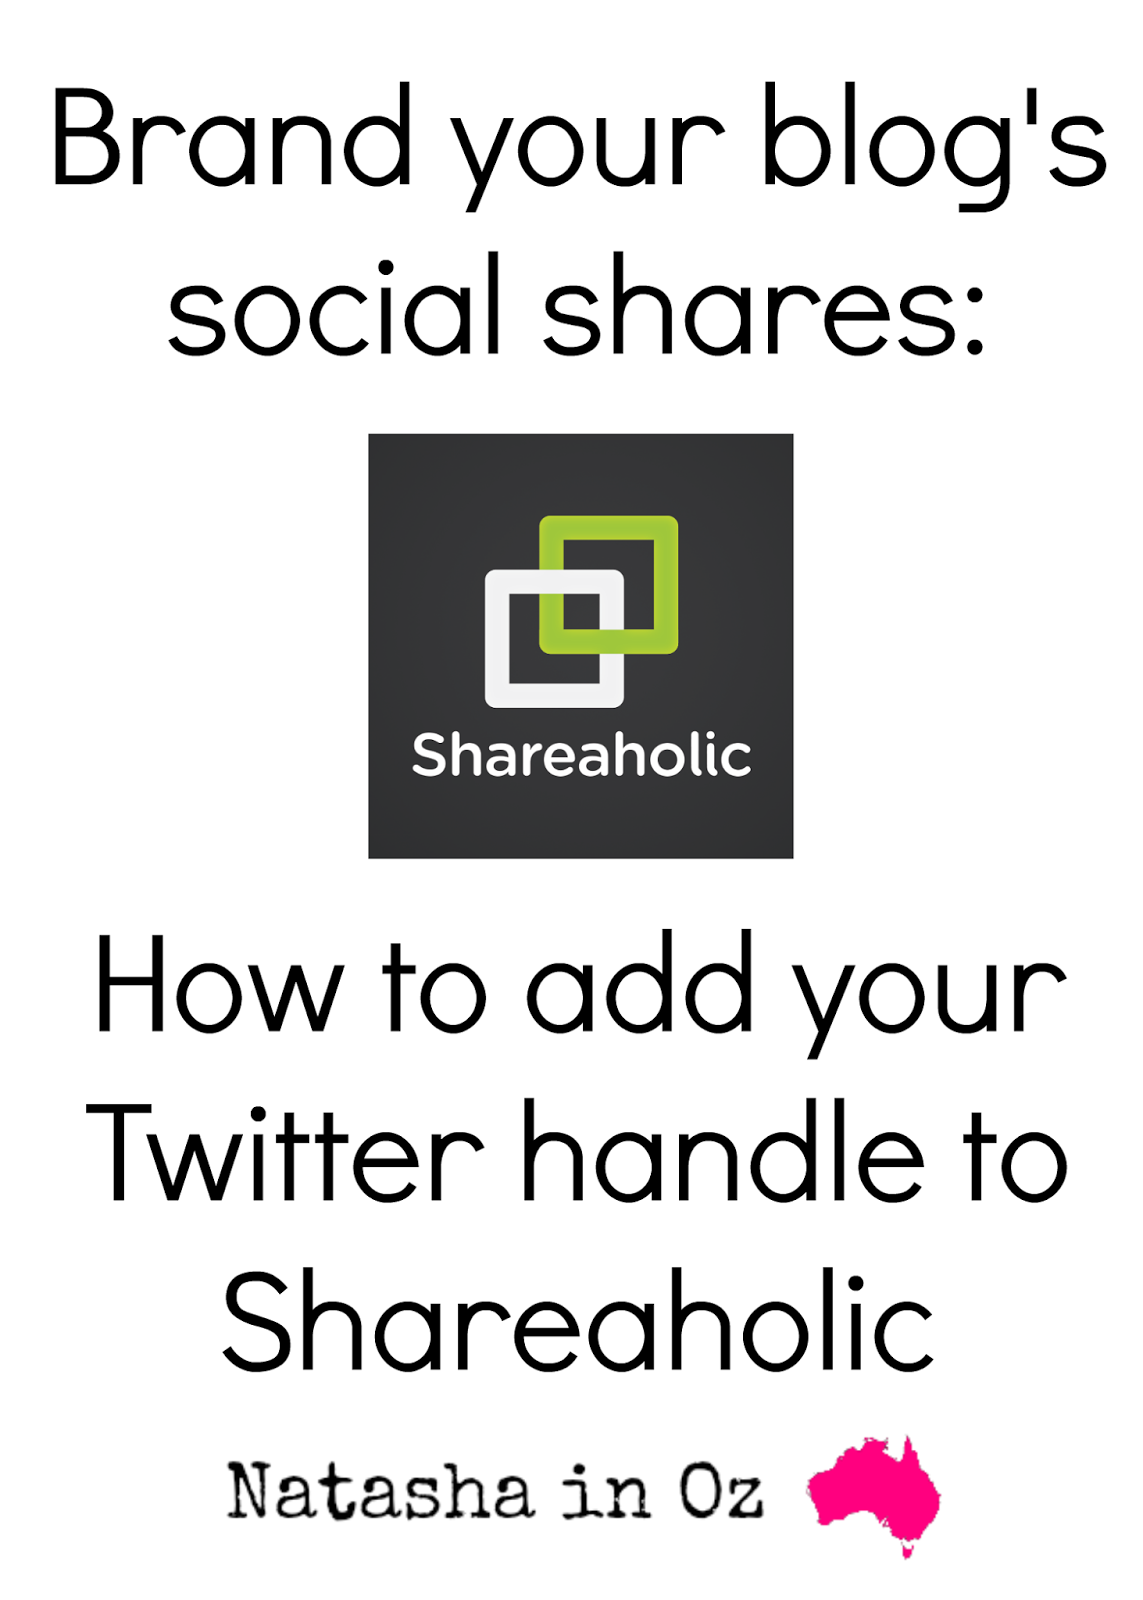 How to Add your own Twitter Handle to Shareaholic.